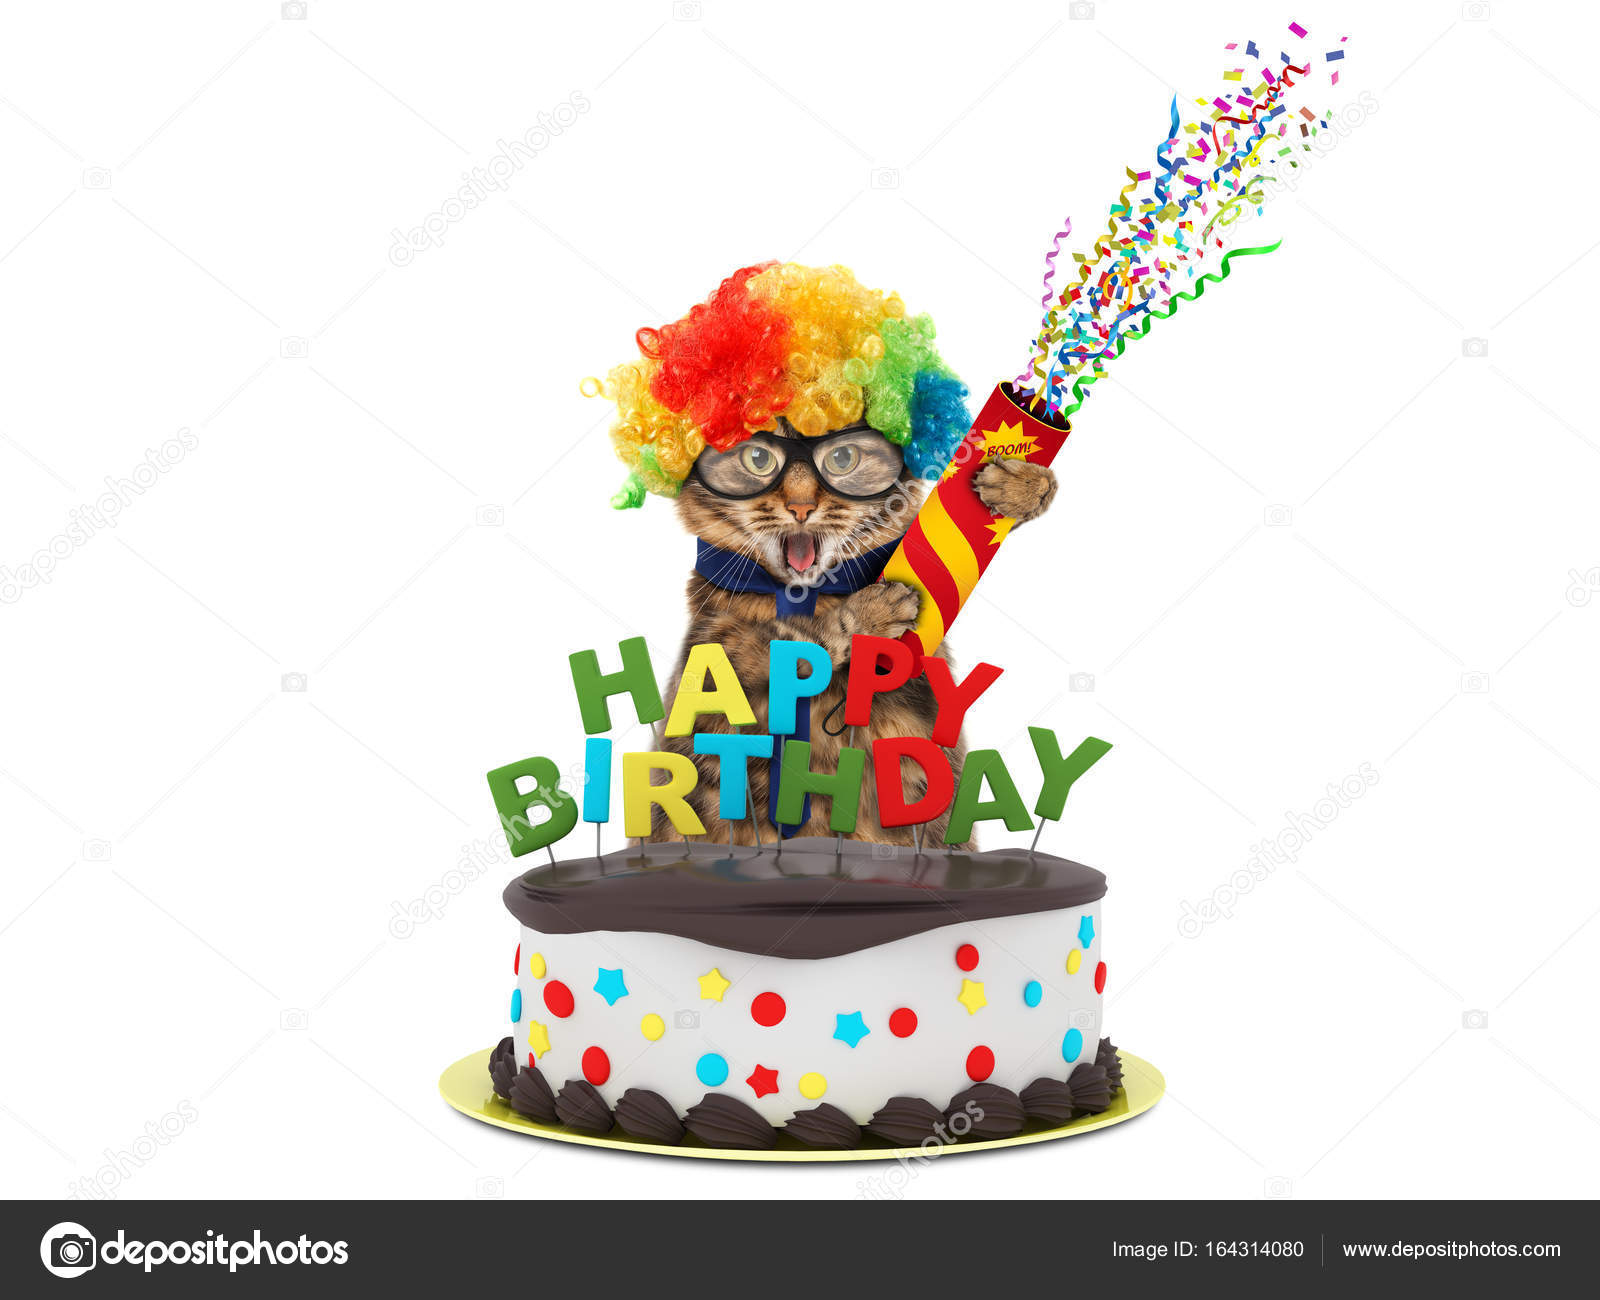 Image result for silly happy birthday cake